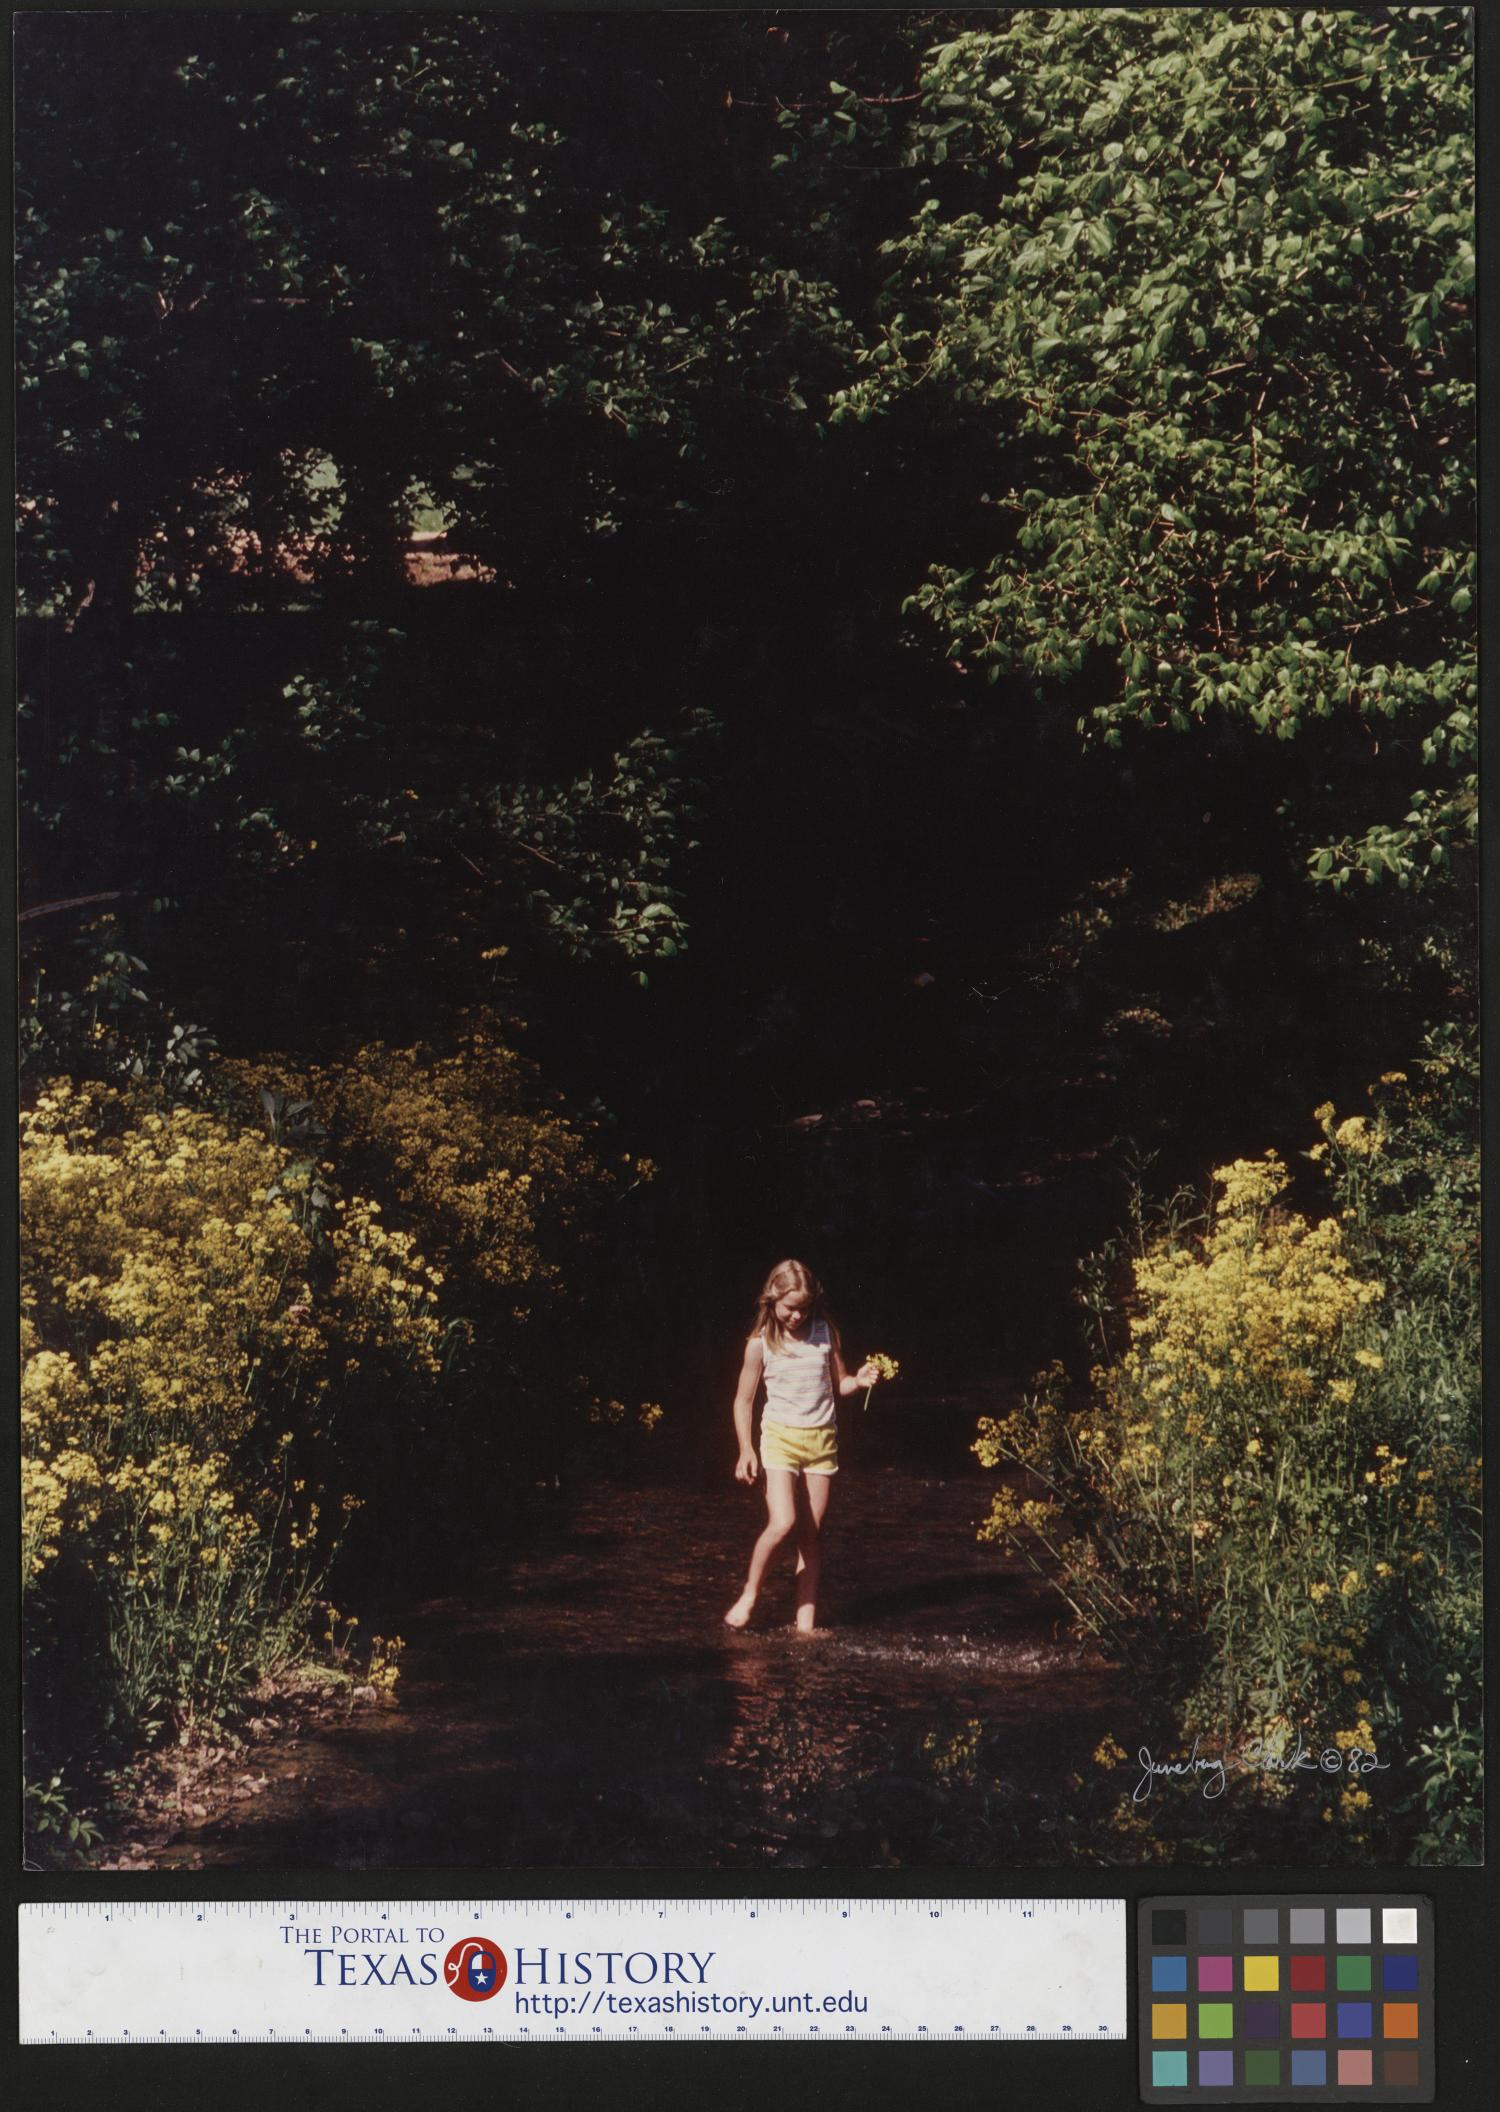 """[Young Girl wading in Mulberry Creek], Photograph of a young girl standing in a creek with flowers in her hand. In this image, the girl is surrounded by yellow flowers, and trees above and behind her. """"Junebug Clark © 82"""" is signed in the lower right corner. Narrative by Junebug Clark: Kathy Brashears is wading through Mulberry Creek in Lynchburg, Tennessee. Photo by: Junebug Clark. Signed by: Junebug Clark Clark PhotoFile: cn0008-0079,"""